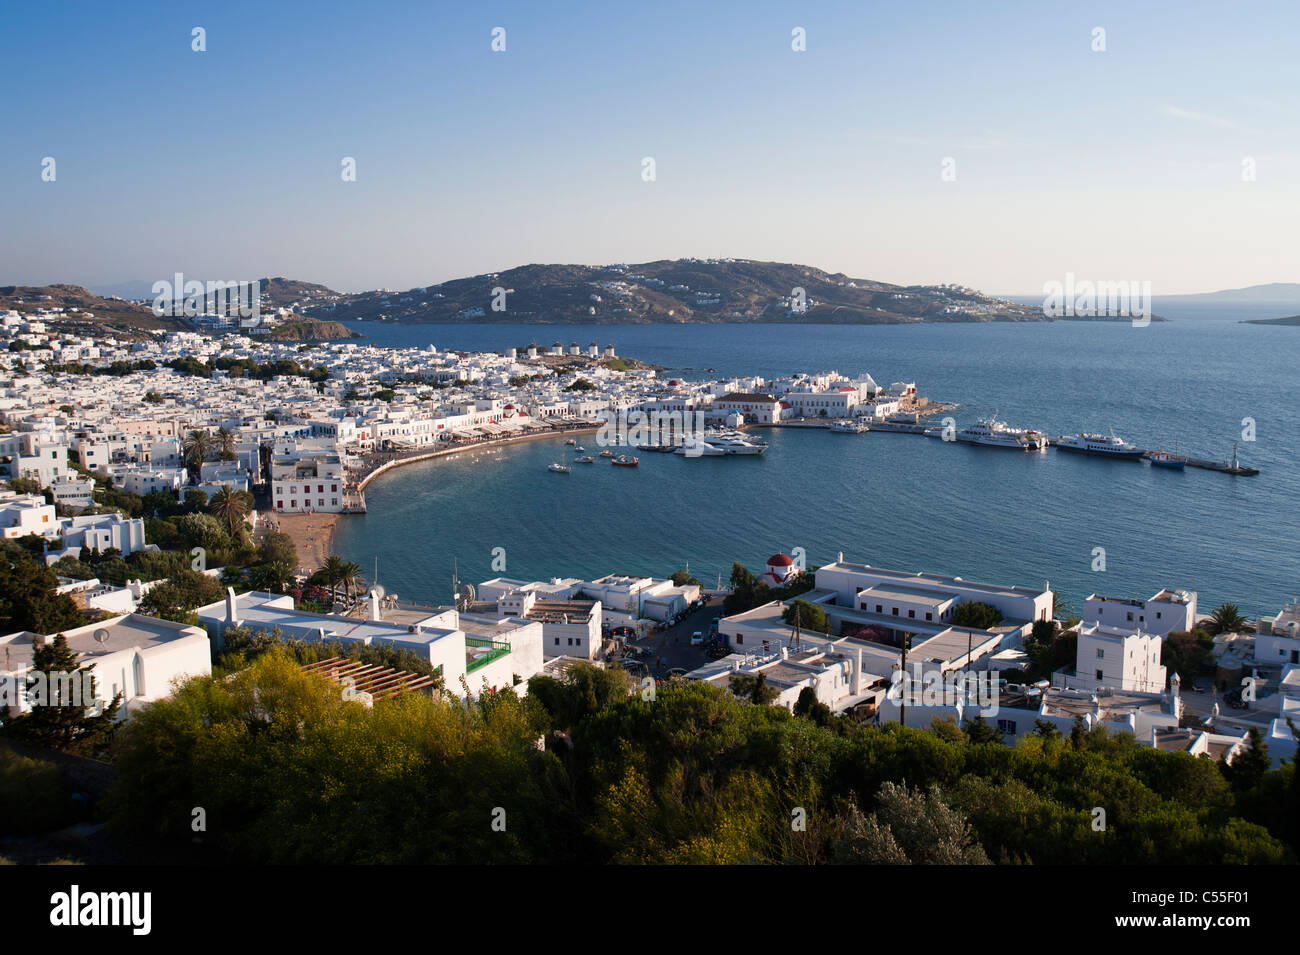 mykonos house stockfotos mykonos house bilder alamy. Black Bedroom Furniture Sets. Home Design Ideas